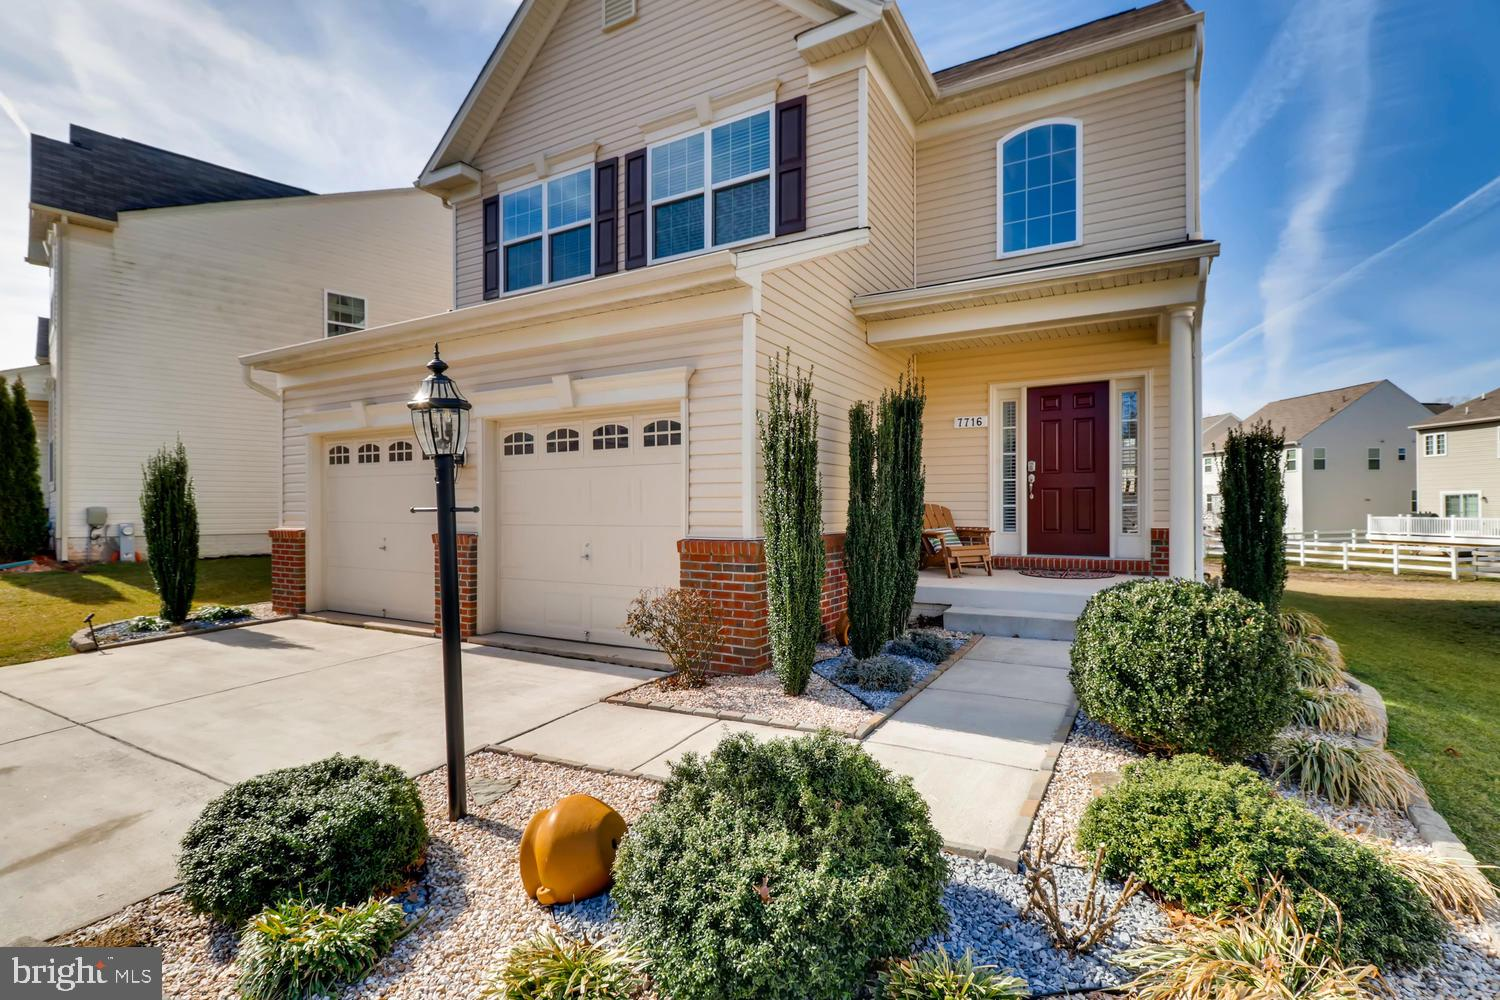 7716 HOLLINS CHAPEL COURT, GLEN BURNIE, MD 21060